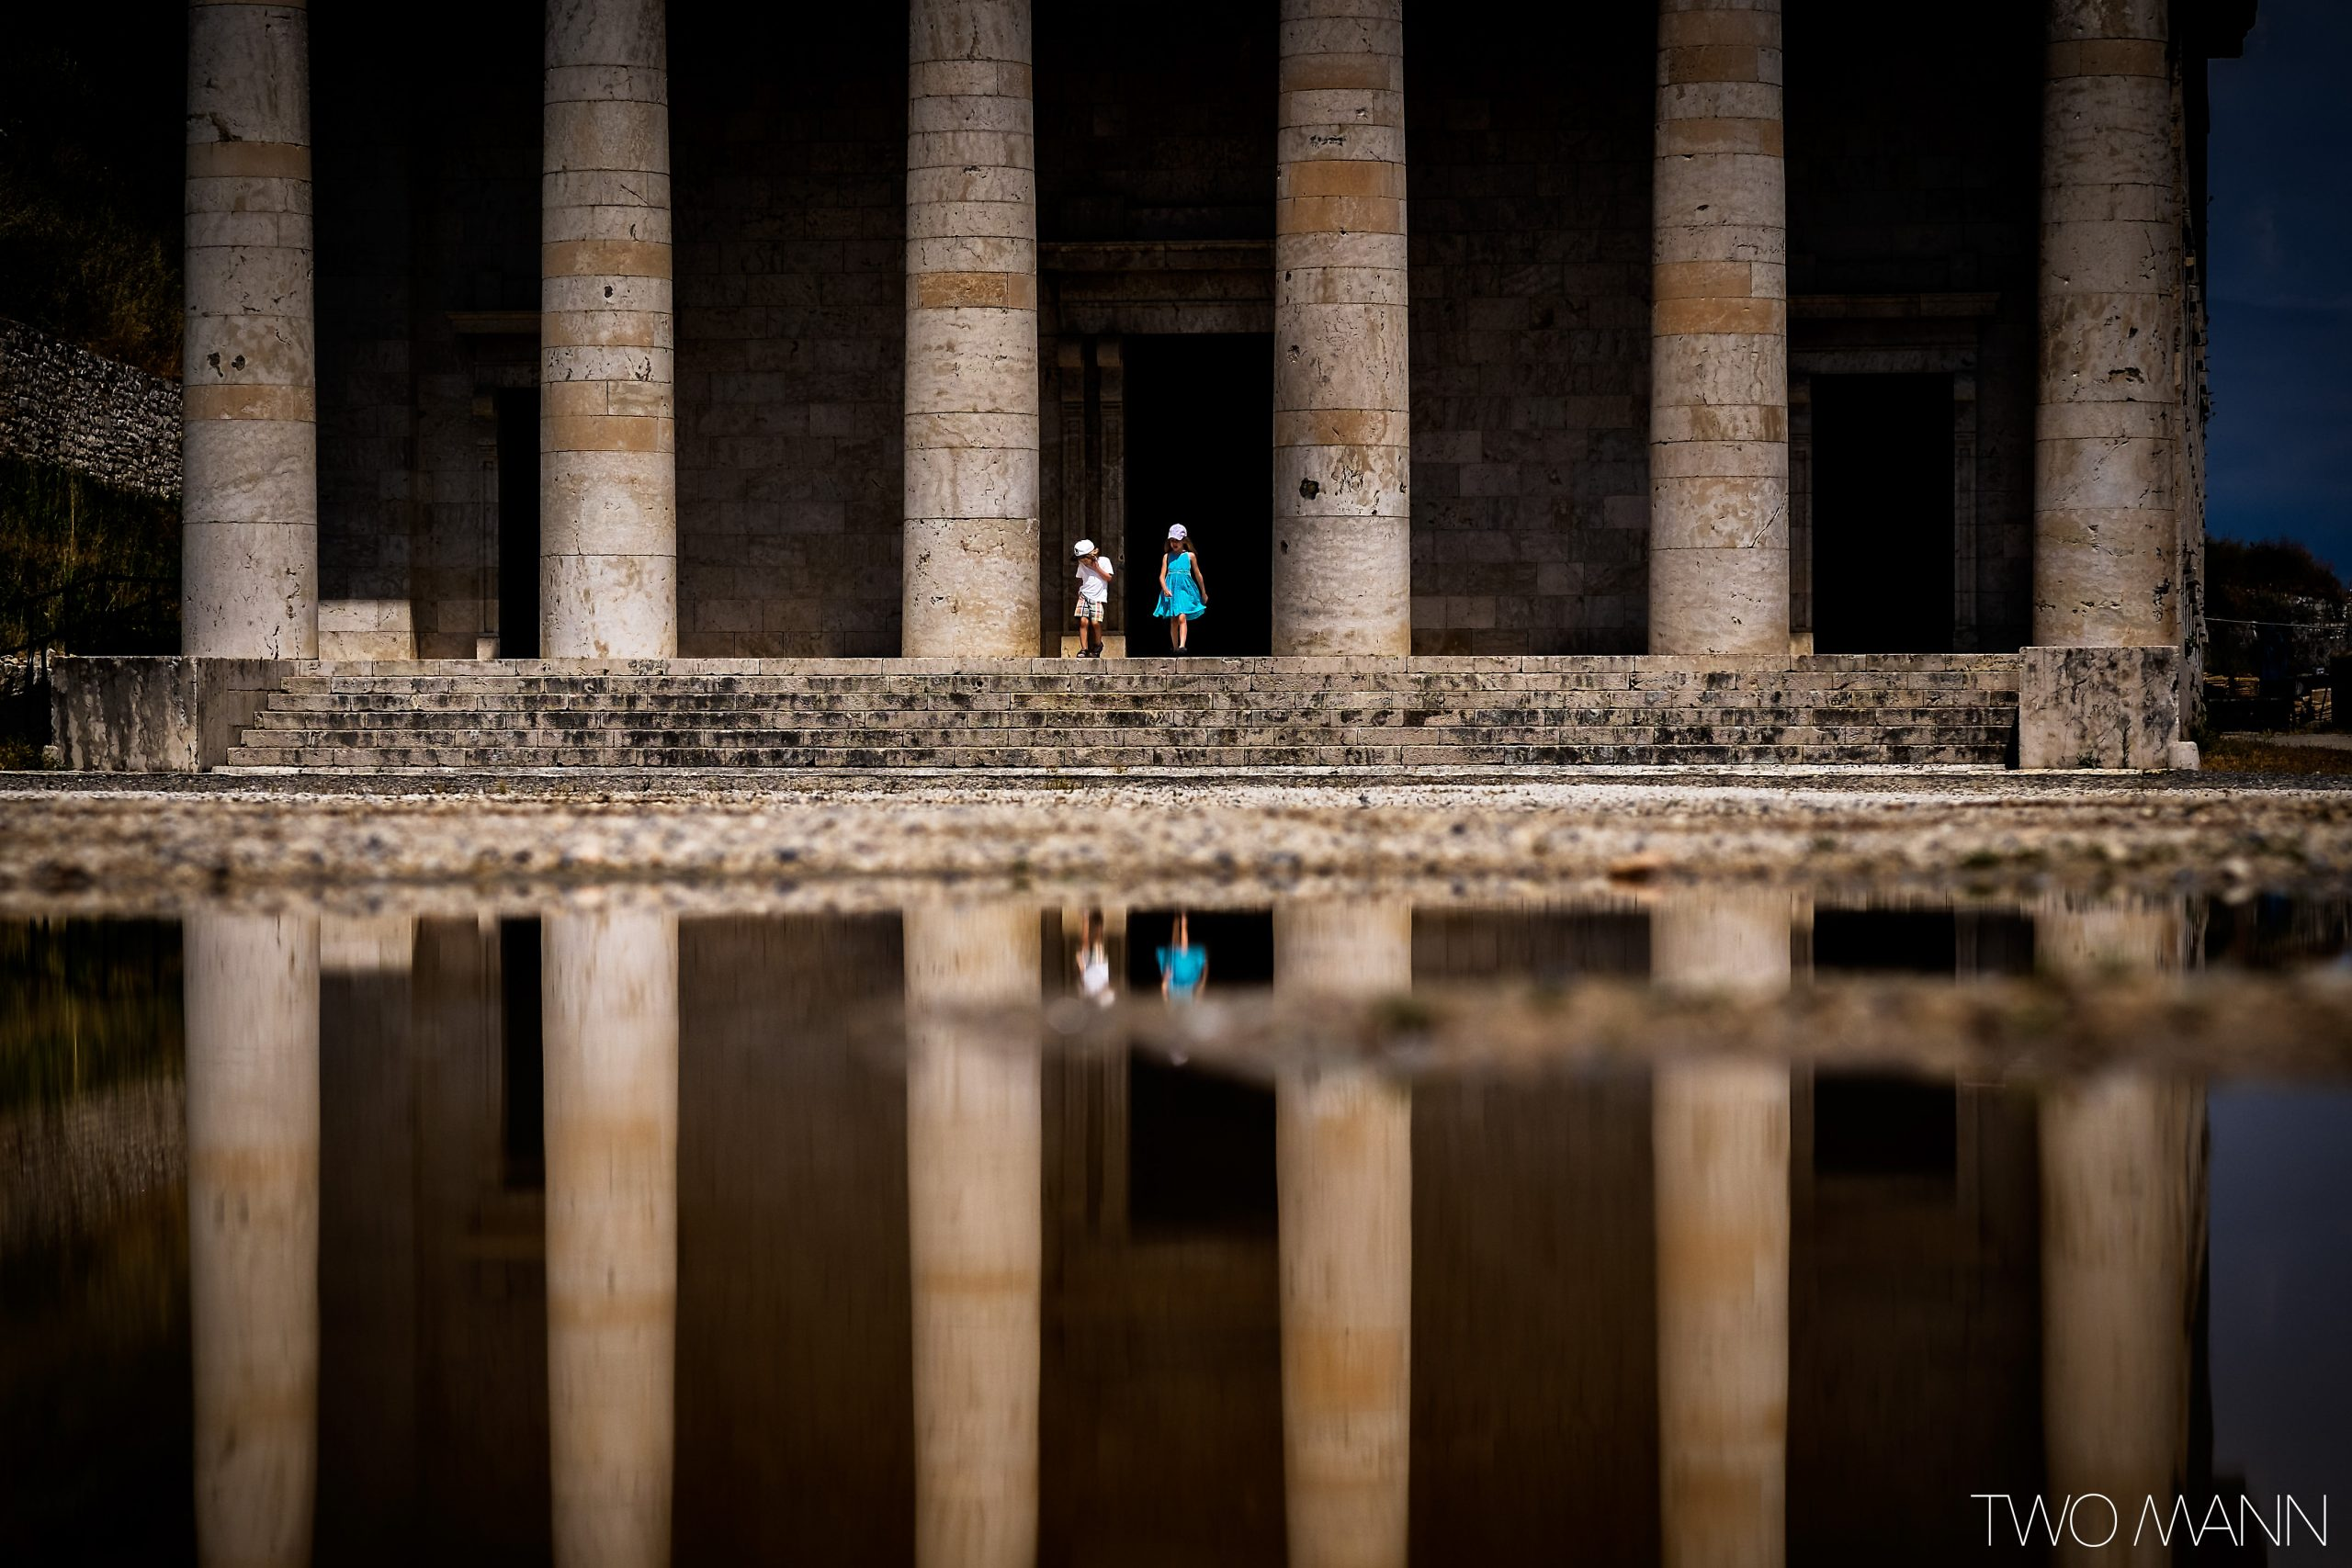 Two kids standing between giant pillars of Temple of Hephasestus